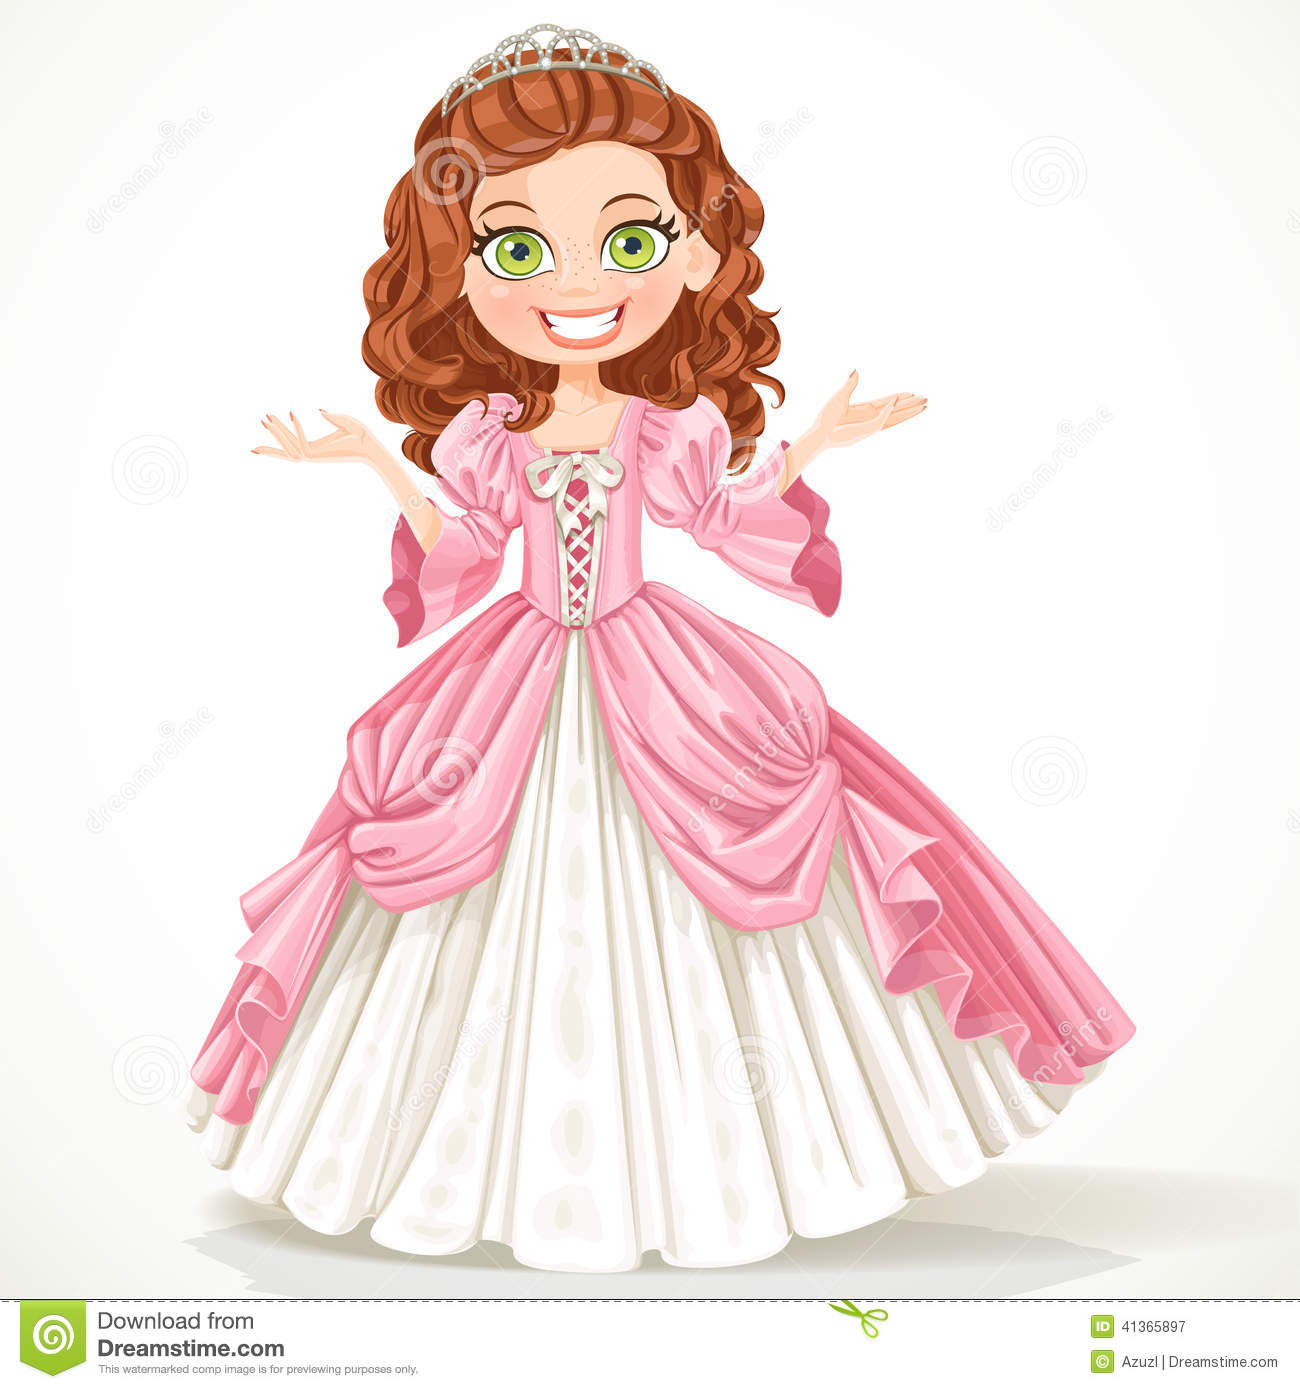 Cute Young Princess With Curly Brown Hair In A Pink Dress